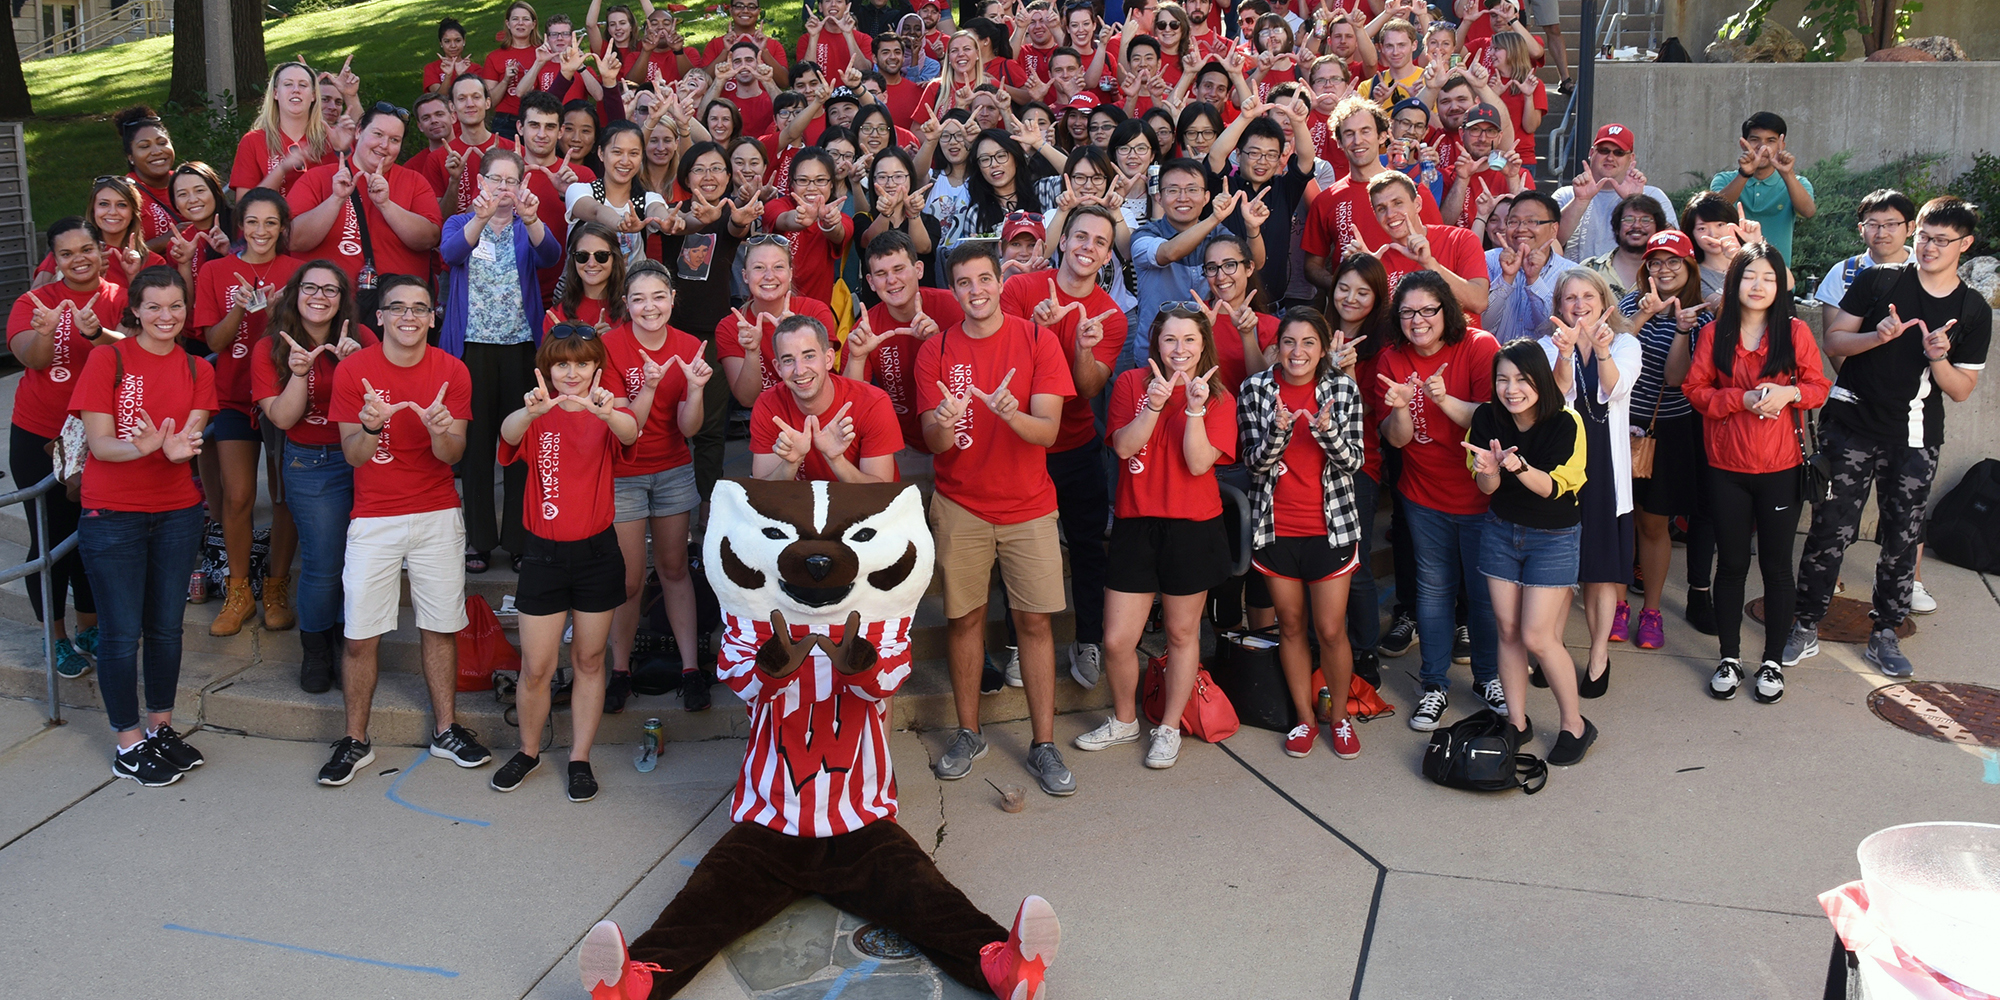 Bucky Badger with UW Law students on plaza